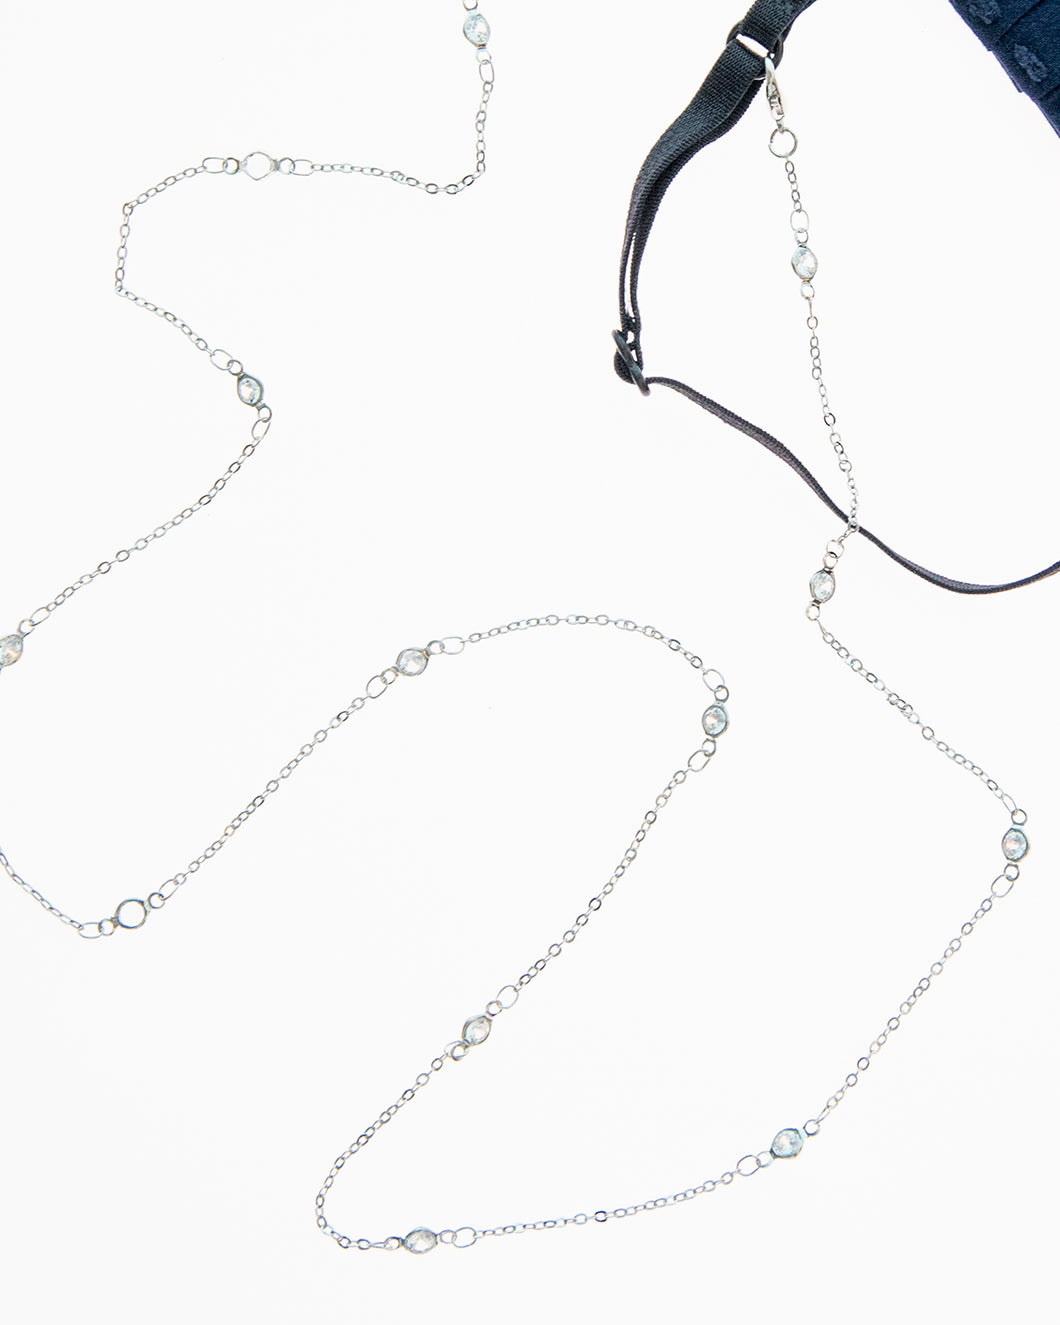 Crystal Sprinkle Mask Necklace in Silver